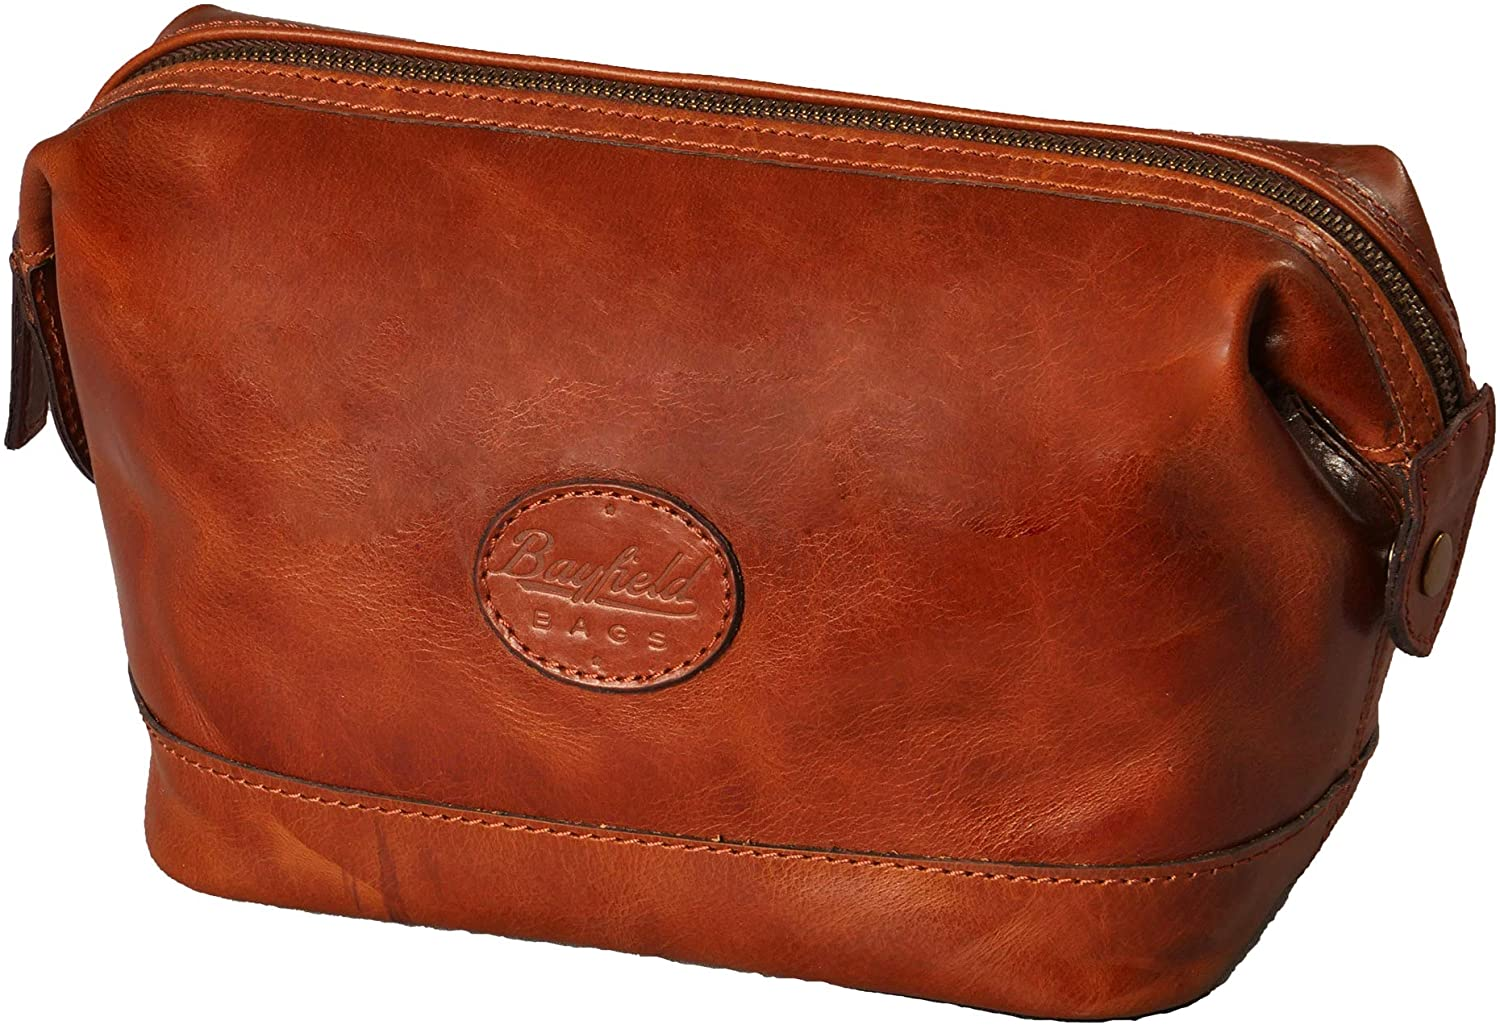 Leather Dopp kit Toiletries and amenities kit Leather pouch Toiletry bag Men\u2019s pouch Shaving bag Birthday bag Valentine/'s Day gift